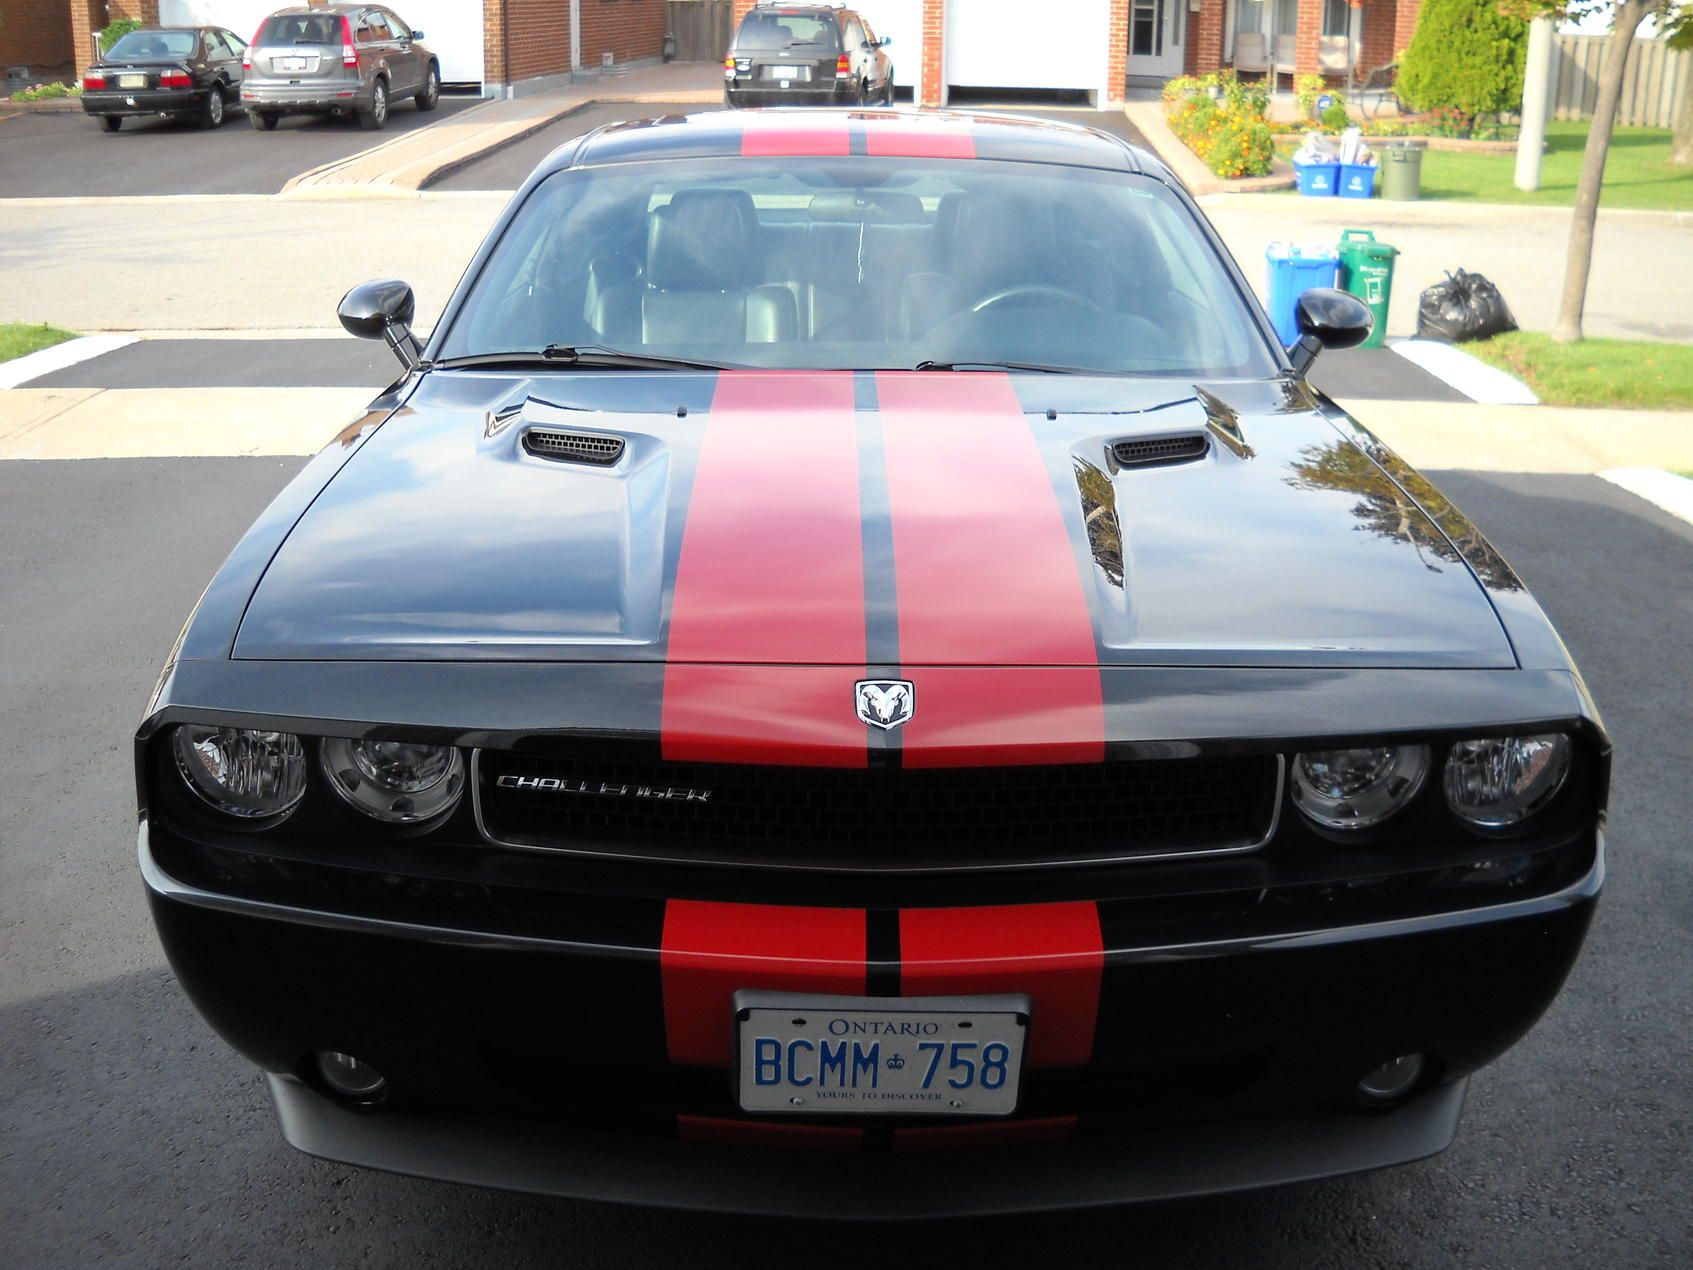 With red stripes dodge challenger